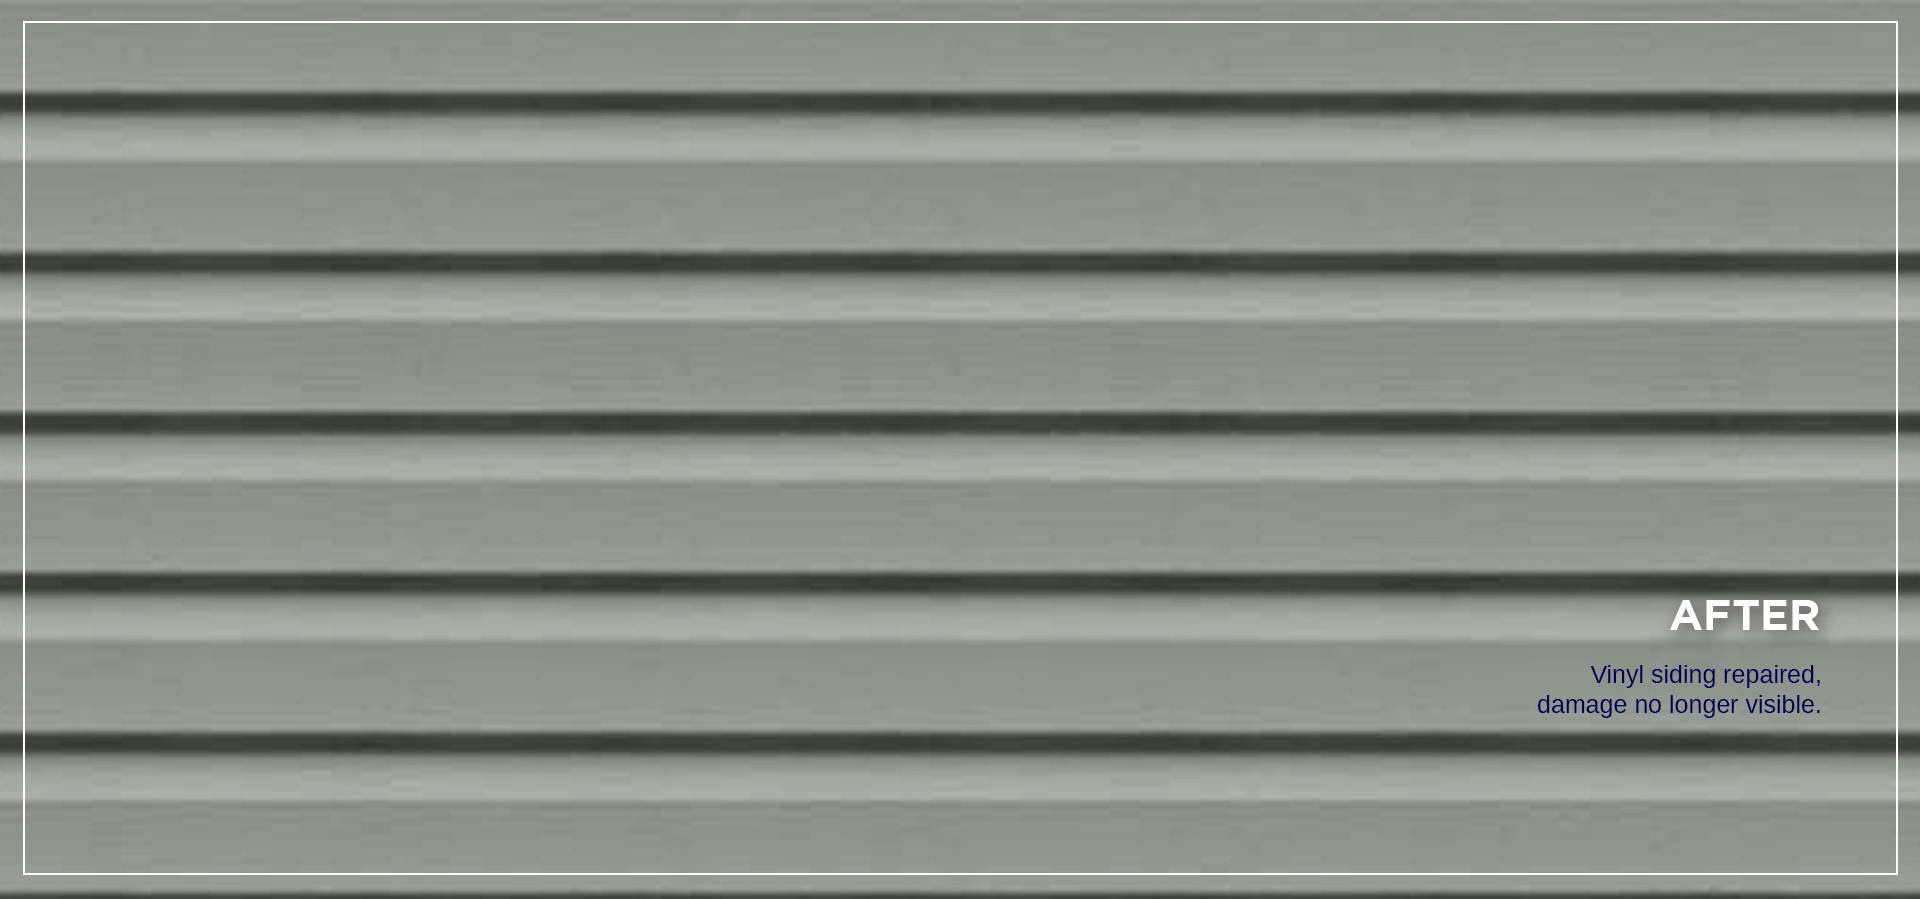 vinyl-siding-damage-repair